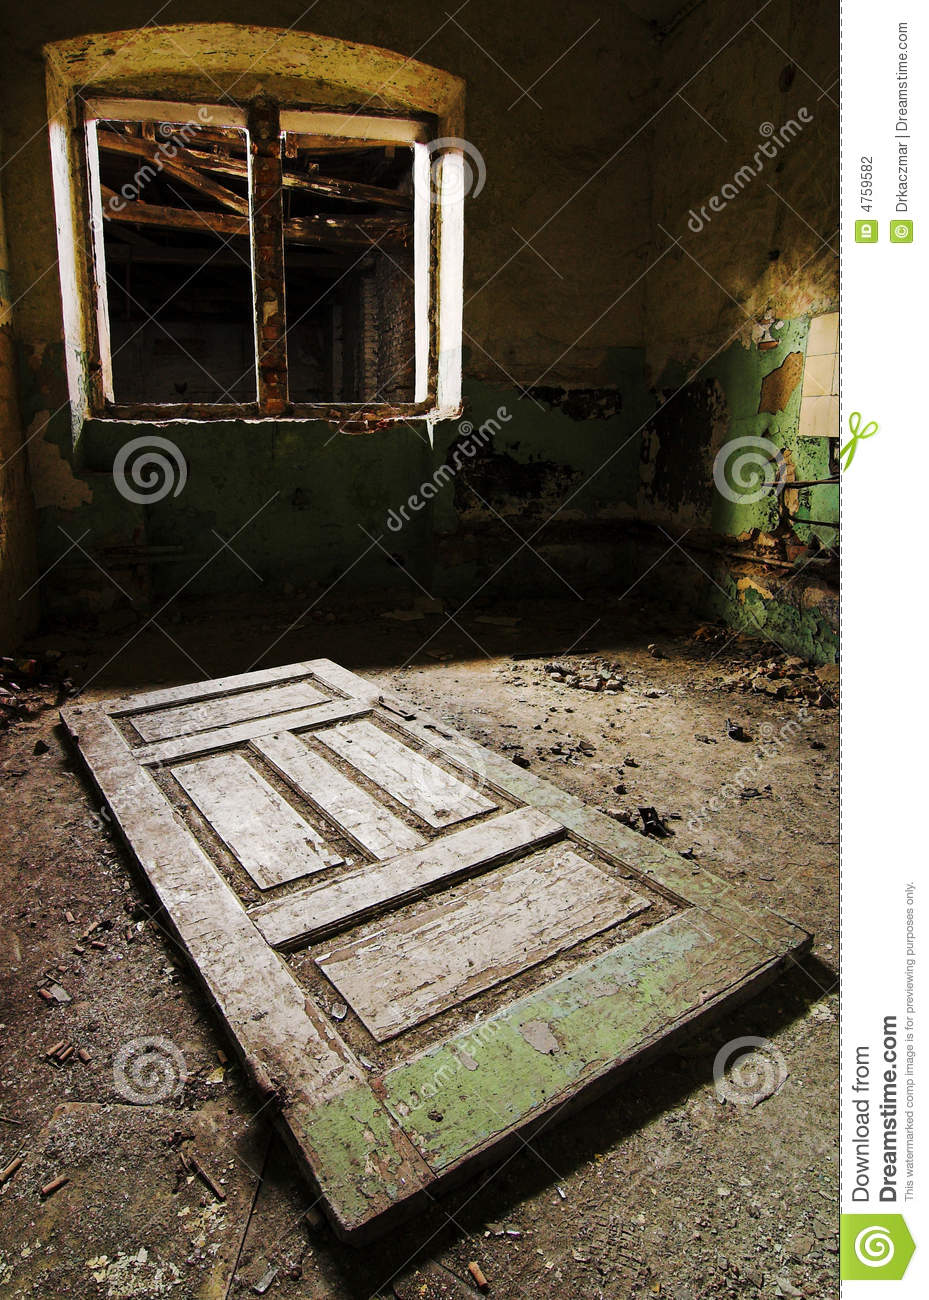 Broken Window And Old Door On The Floor Stock Photography